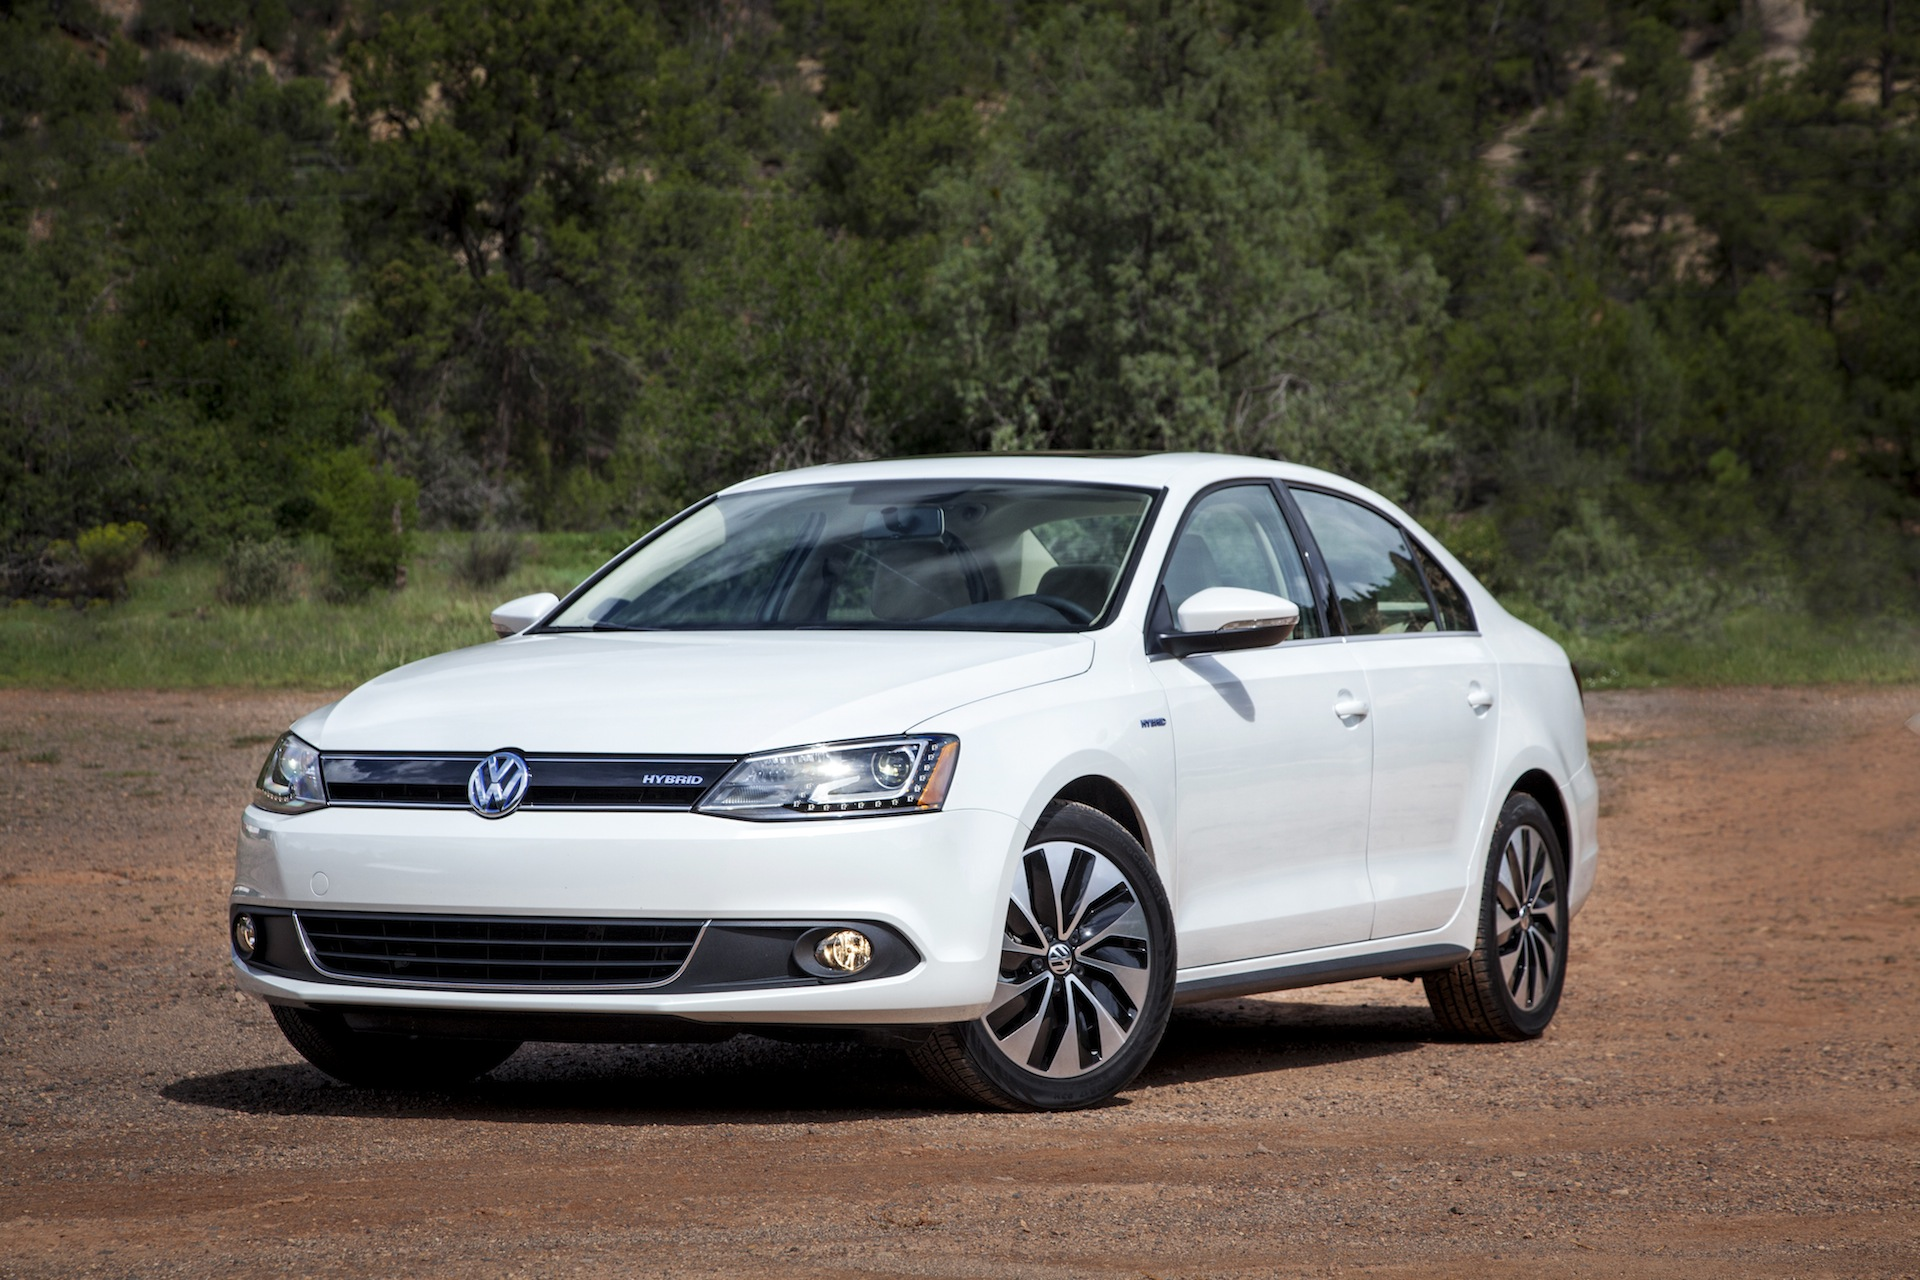 Volkswagen Tdi Mpg Volkswagen Jetta Hybrid Pulled From Vw39s Us Lineup In 2017